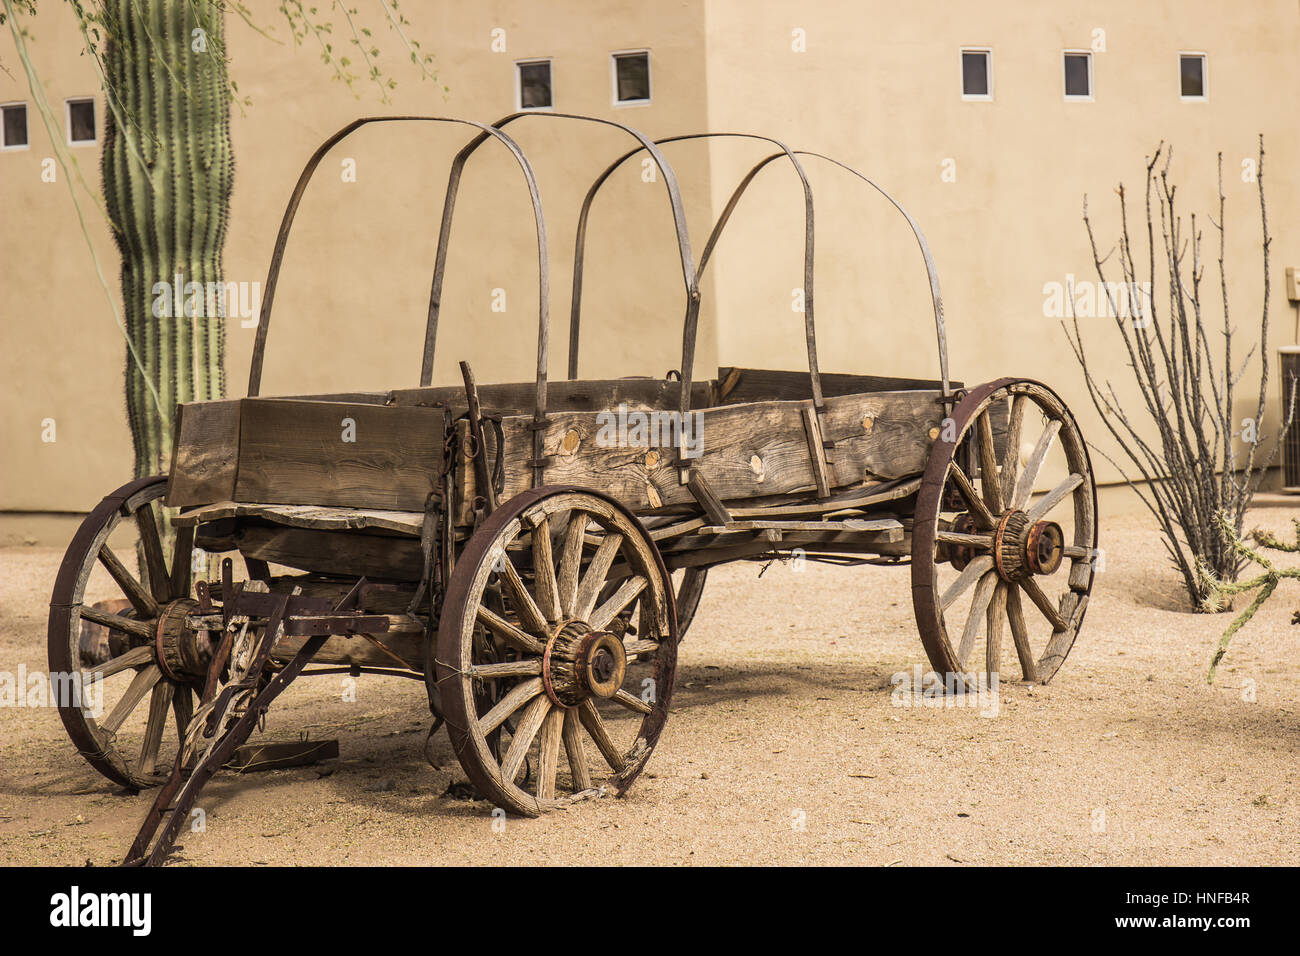 Vintage Western Wagon In Front Of Abobe Building - Stock Image